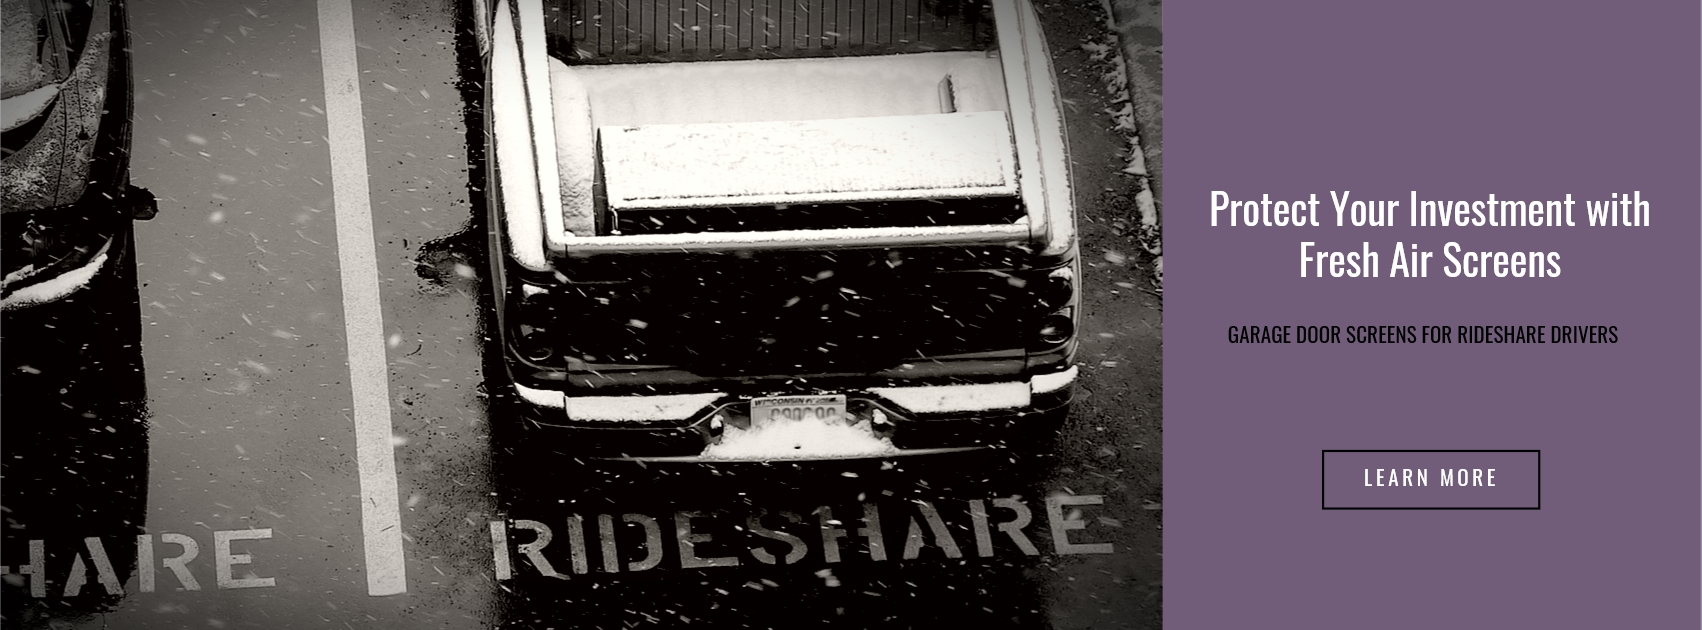 Ride Share Banner